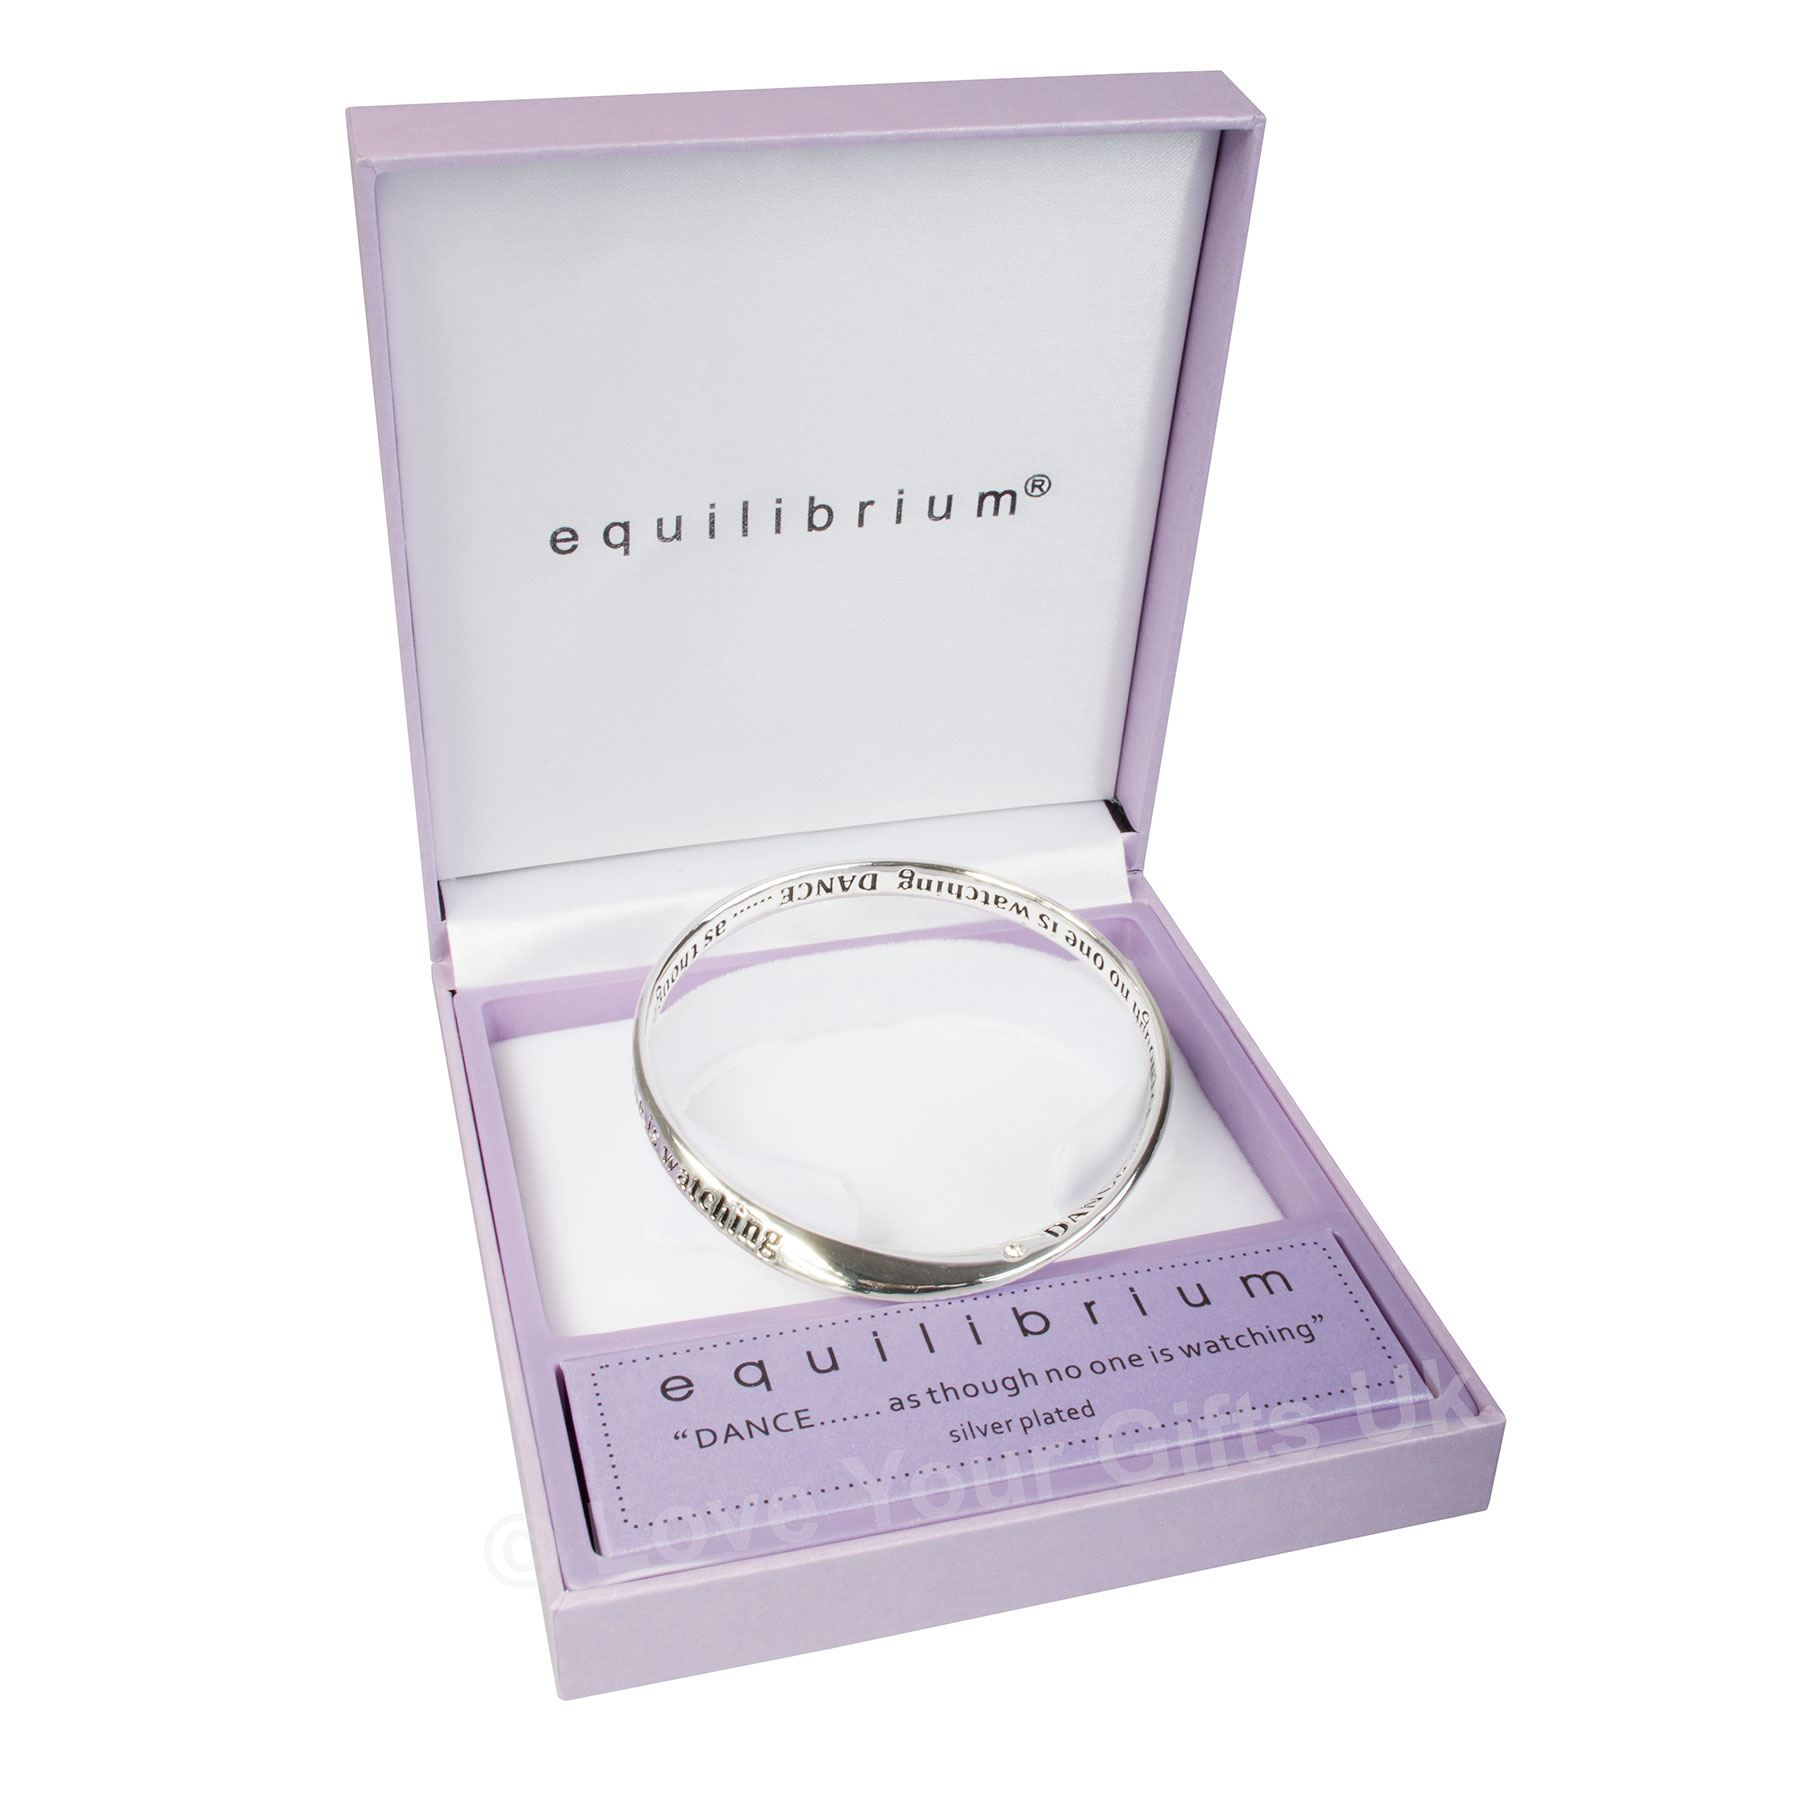 Equilibrium Silver Plated Bangle - Dance As Though No One Is Watching UHWb6N3b